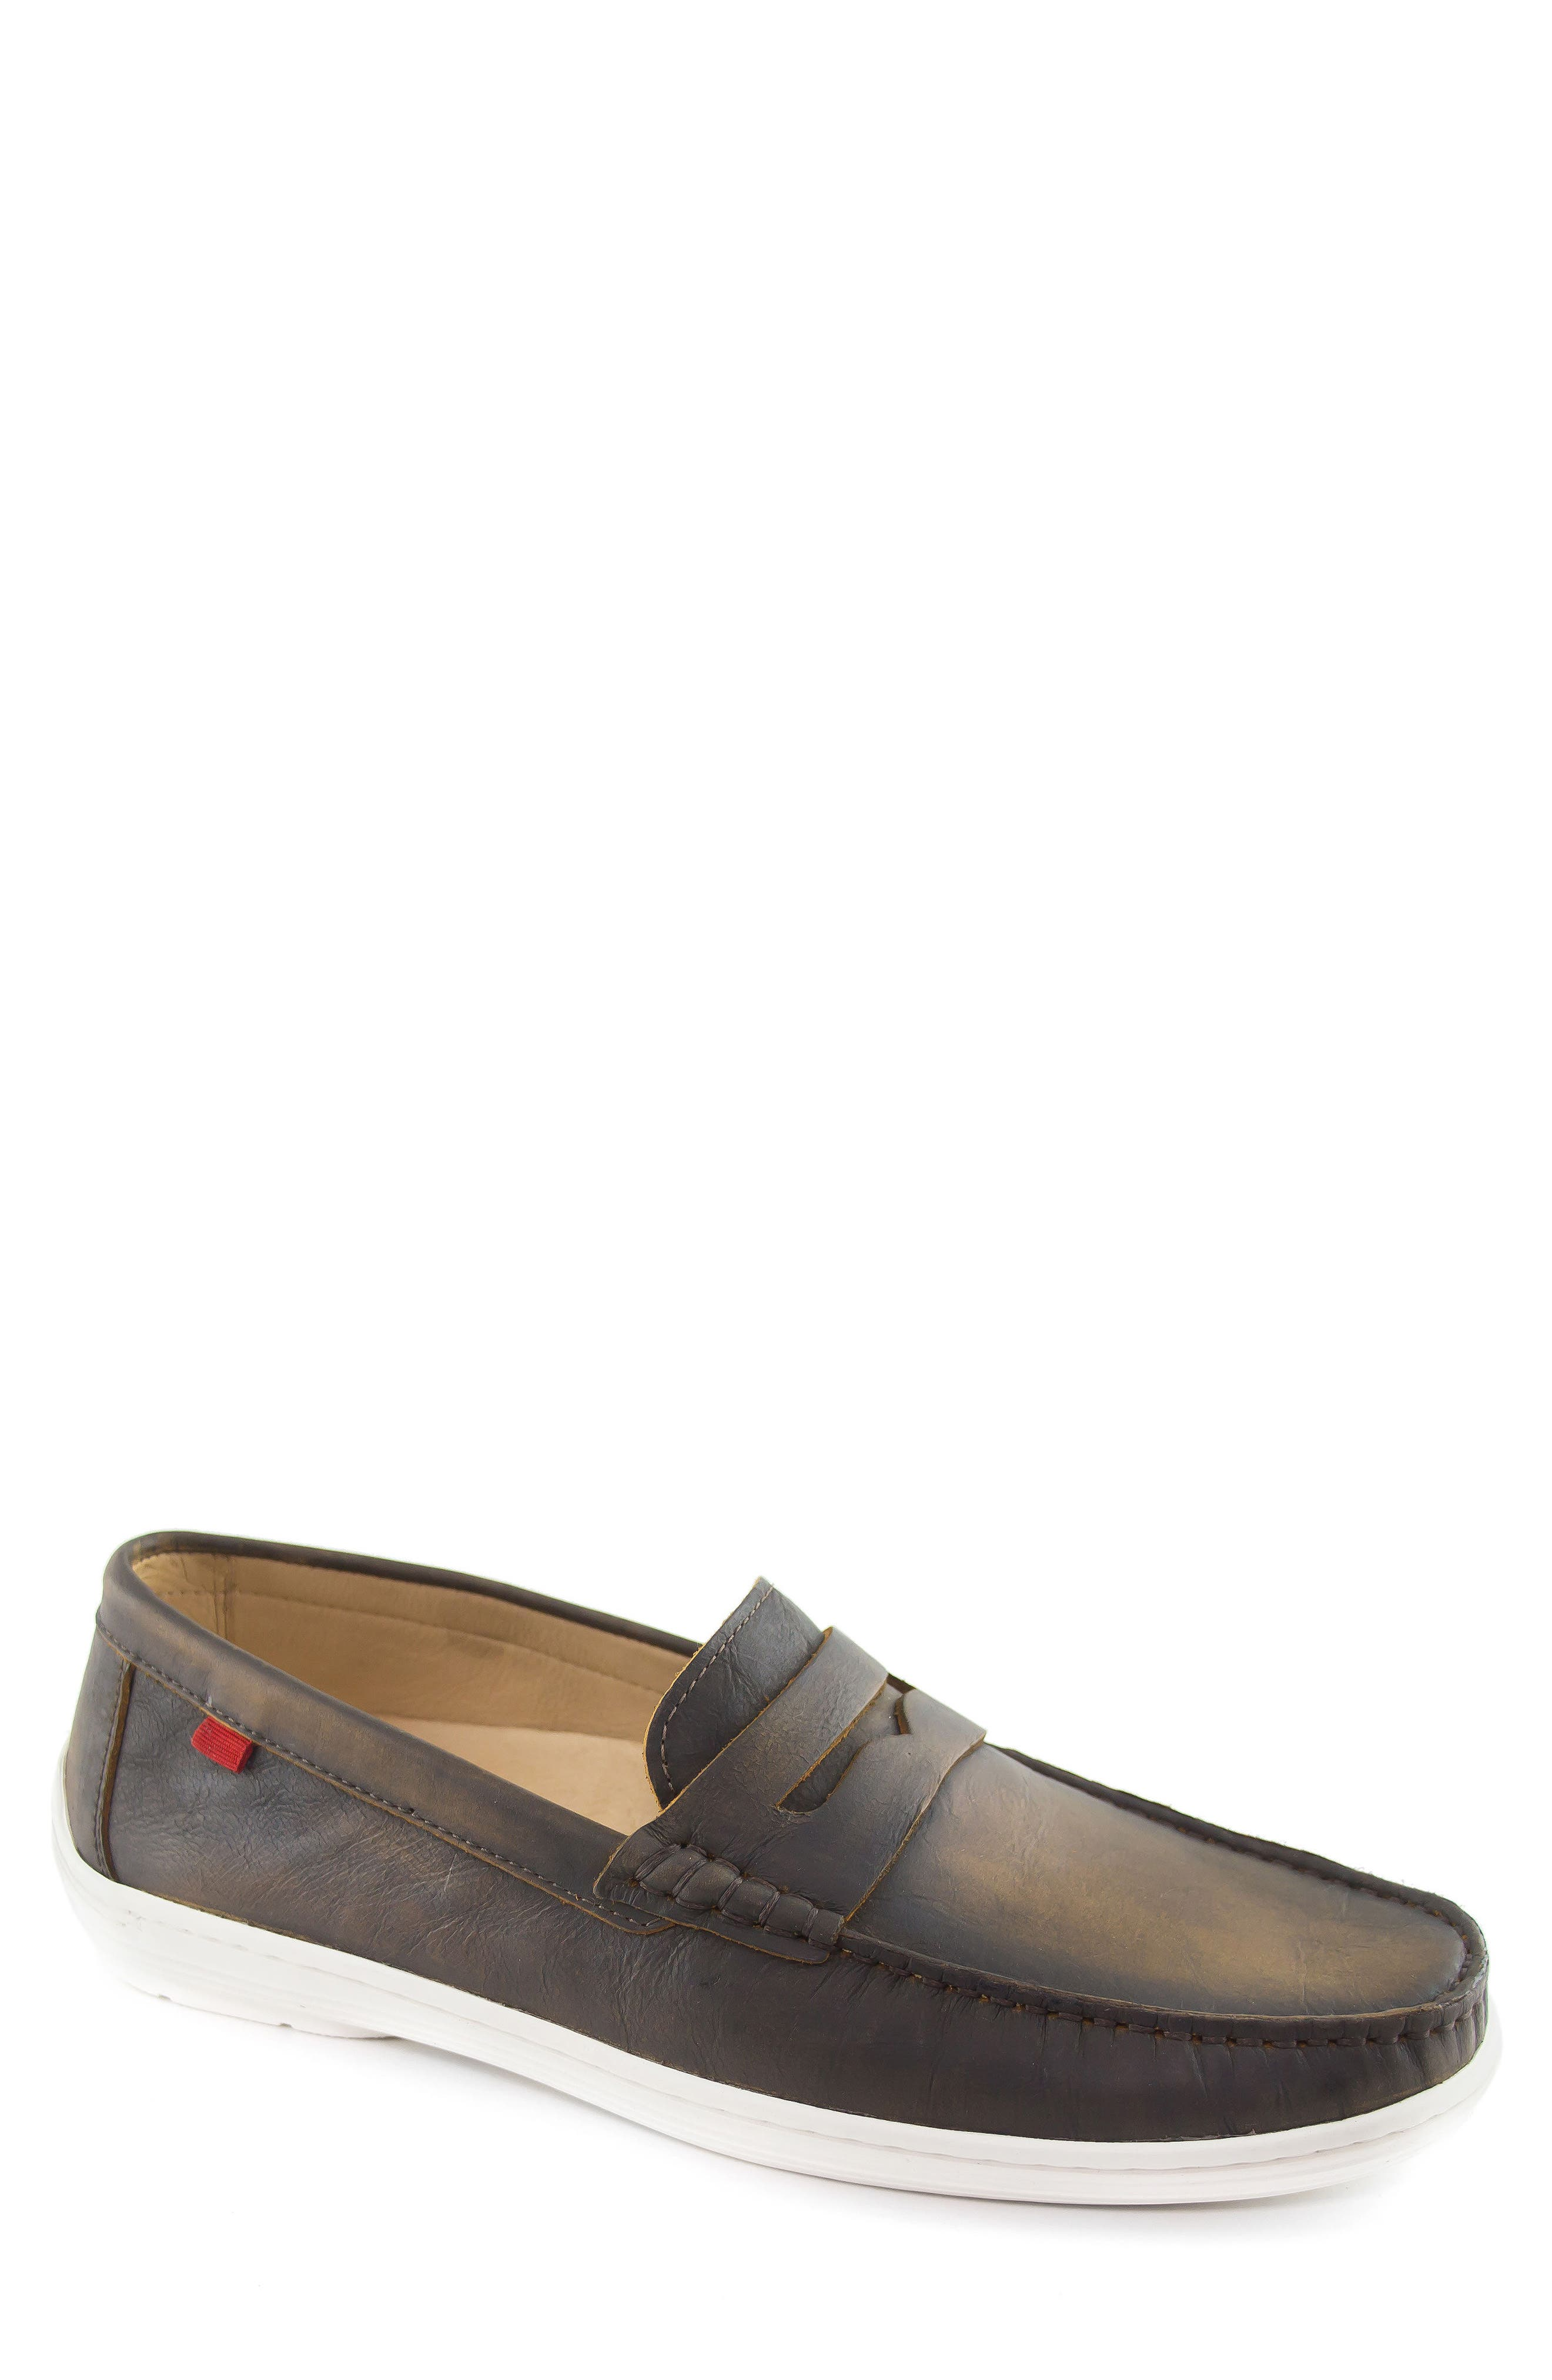 Atlantic Penny Loafer,                         Main,                         color, 206